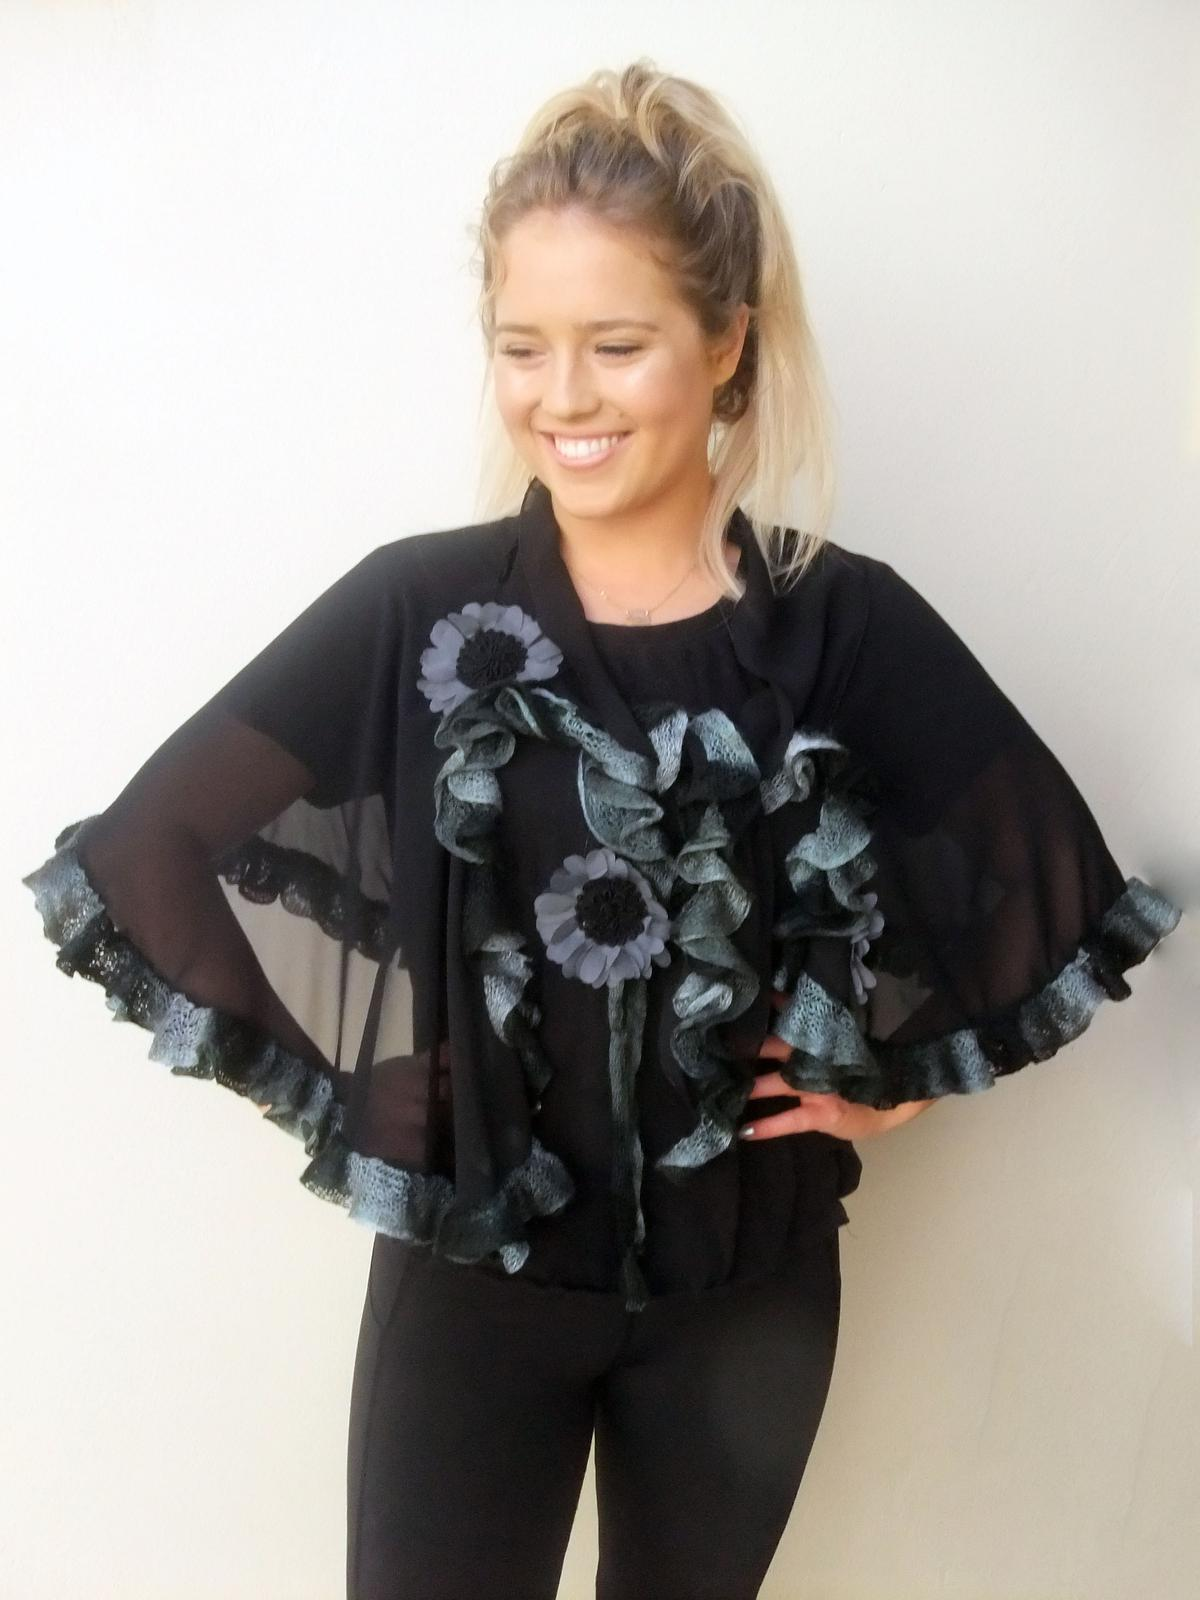 Black Chiffon Cape with flowers and handknitted edge frill.